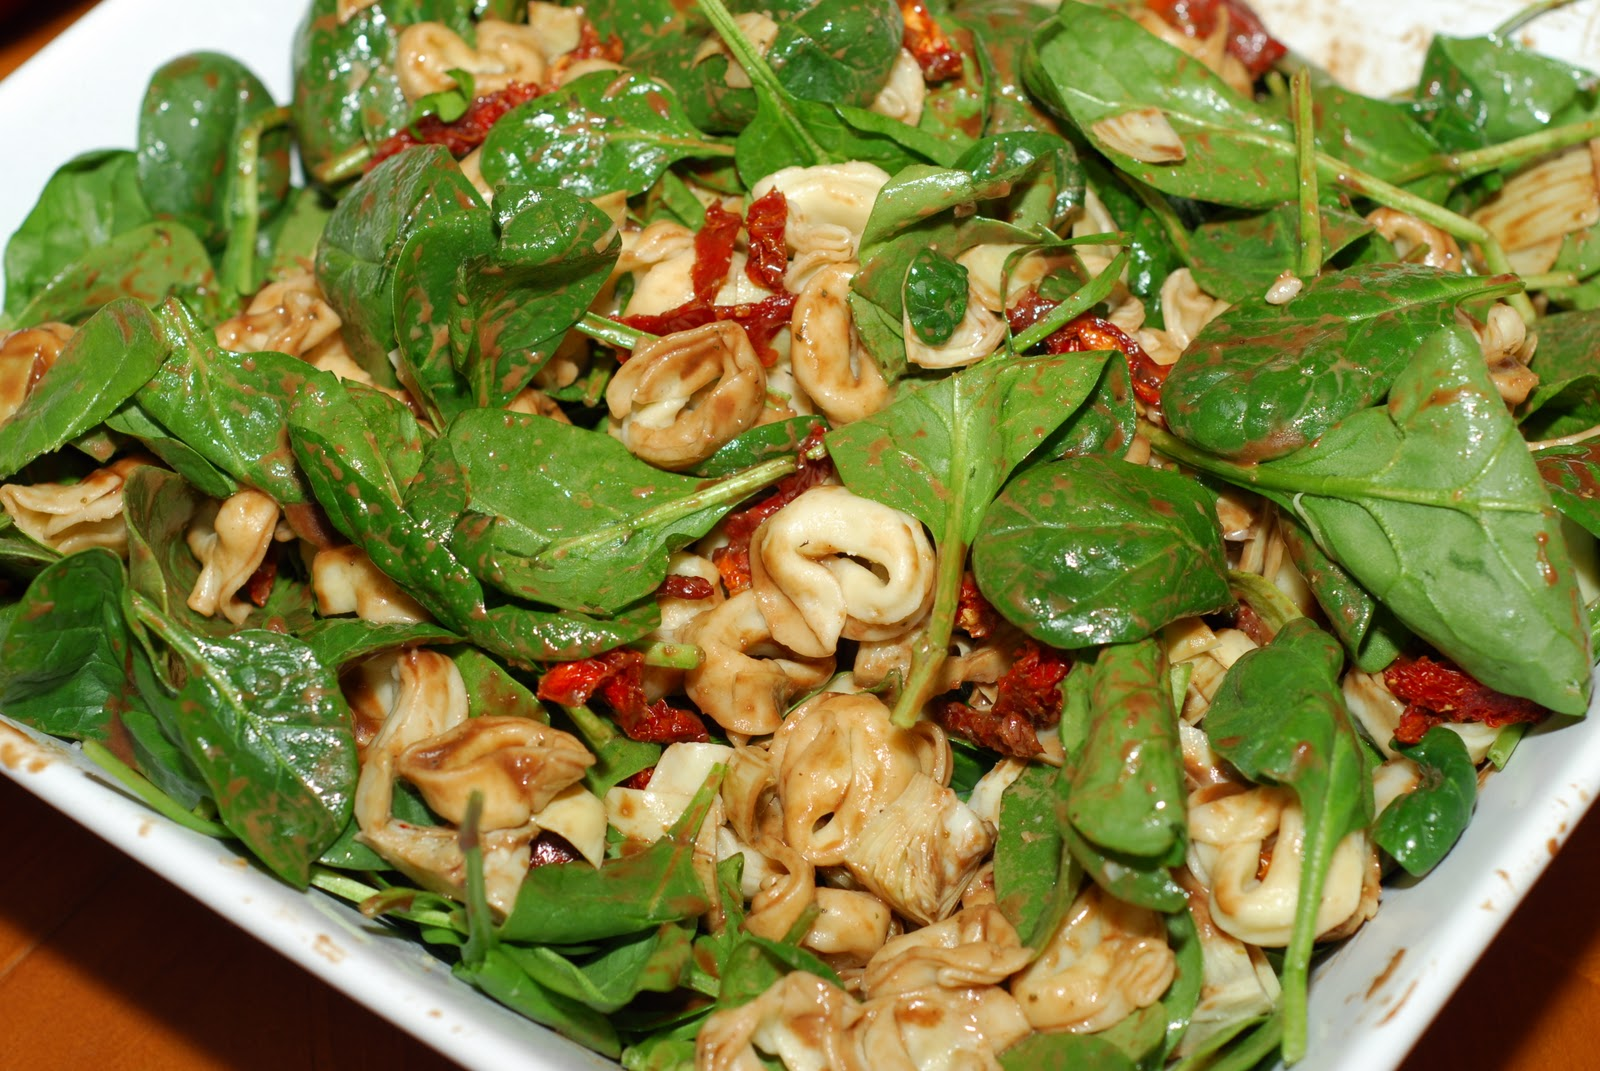 Tortellini, Chicken And Spinach Salad With Tomato-Balsamic ...